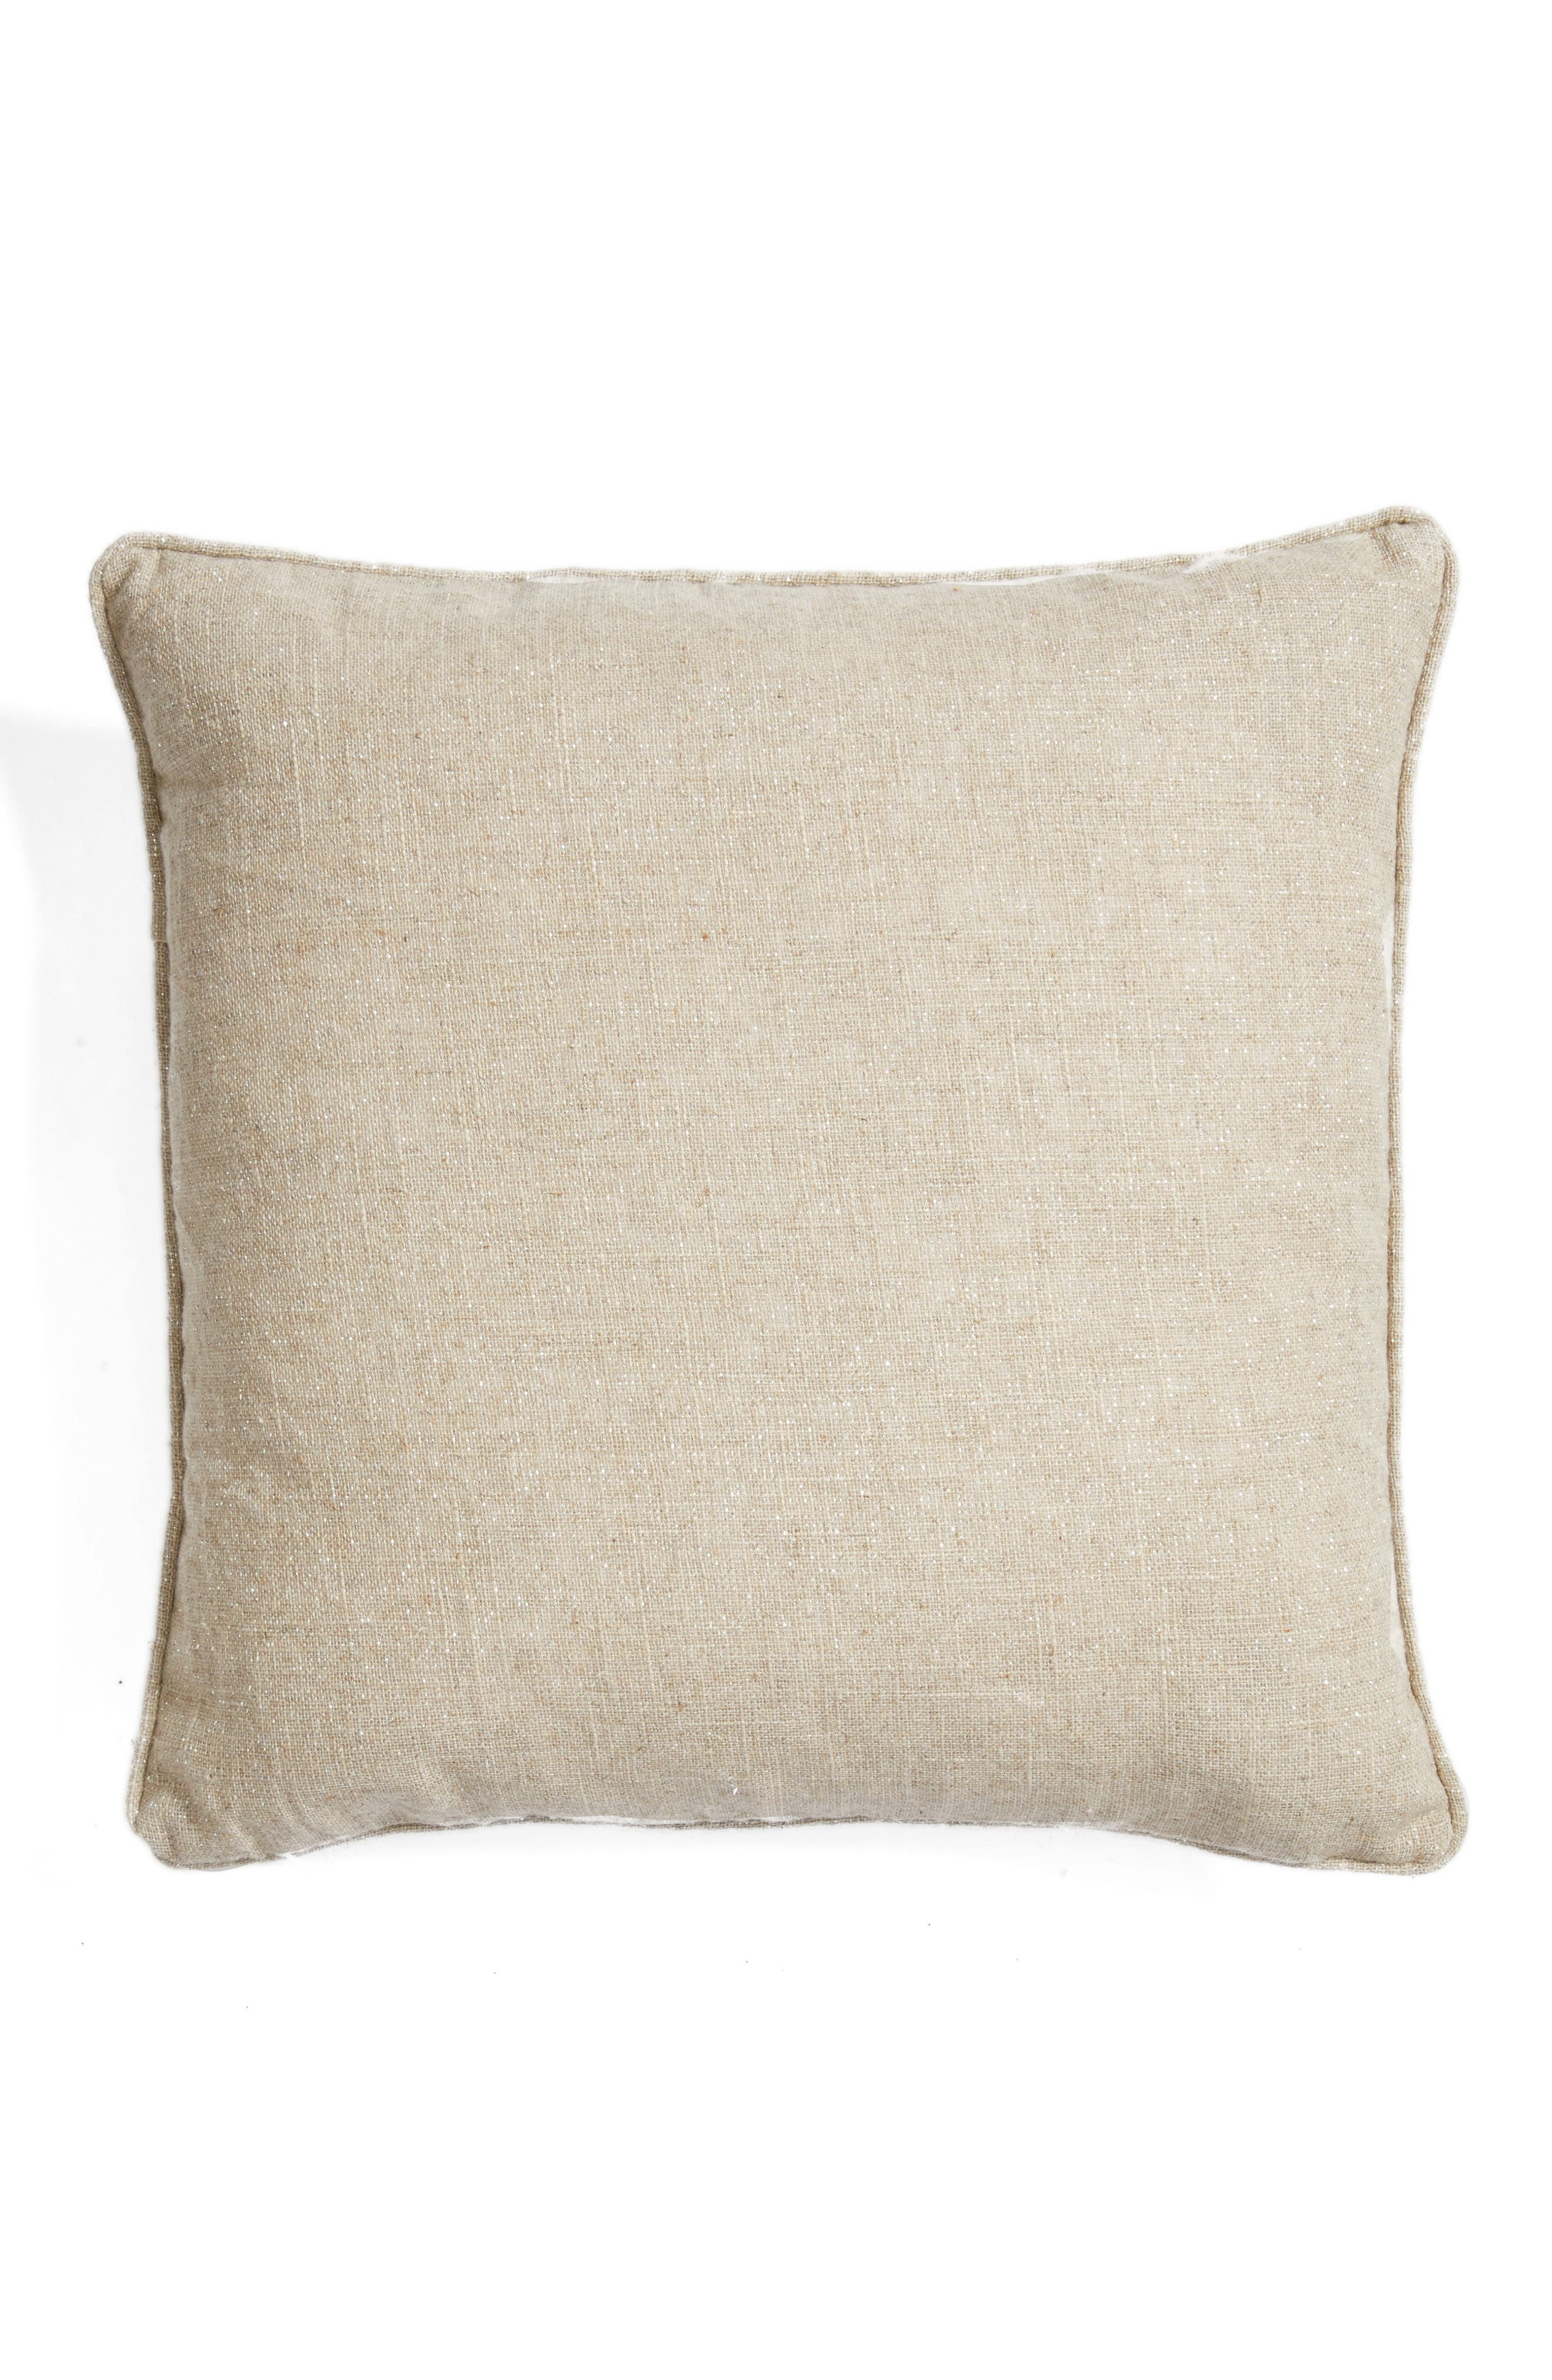 Pompom Heart Accent Pillow,                             Alternate thumbnail 2, color,                             Natural